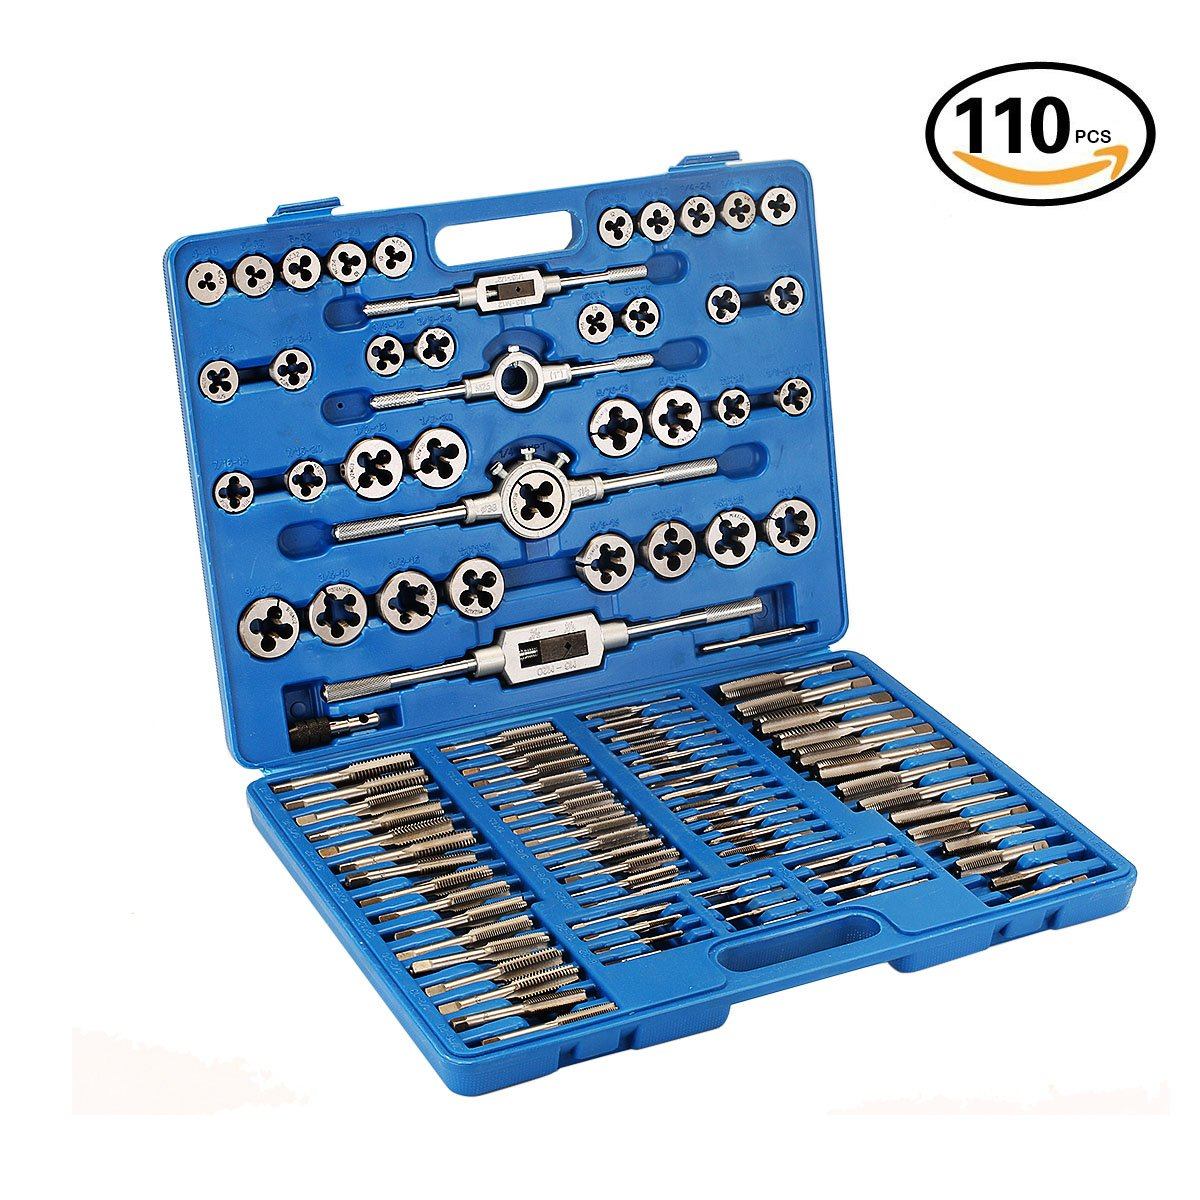 Zoostliss 110 Piece Sae Metric Tap and Die Set Tungsten Steel Titanium Sae and Metric Tools with Carrying Case